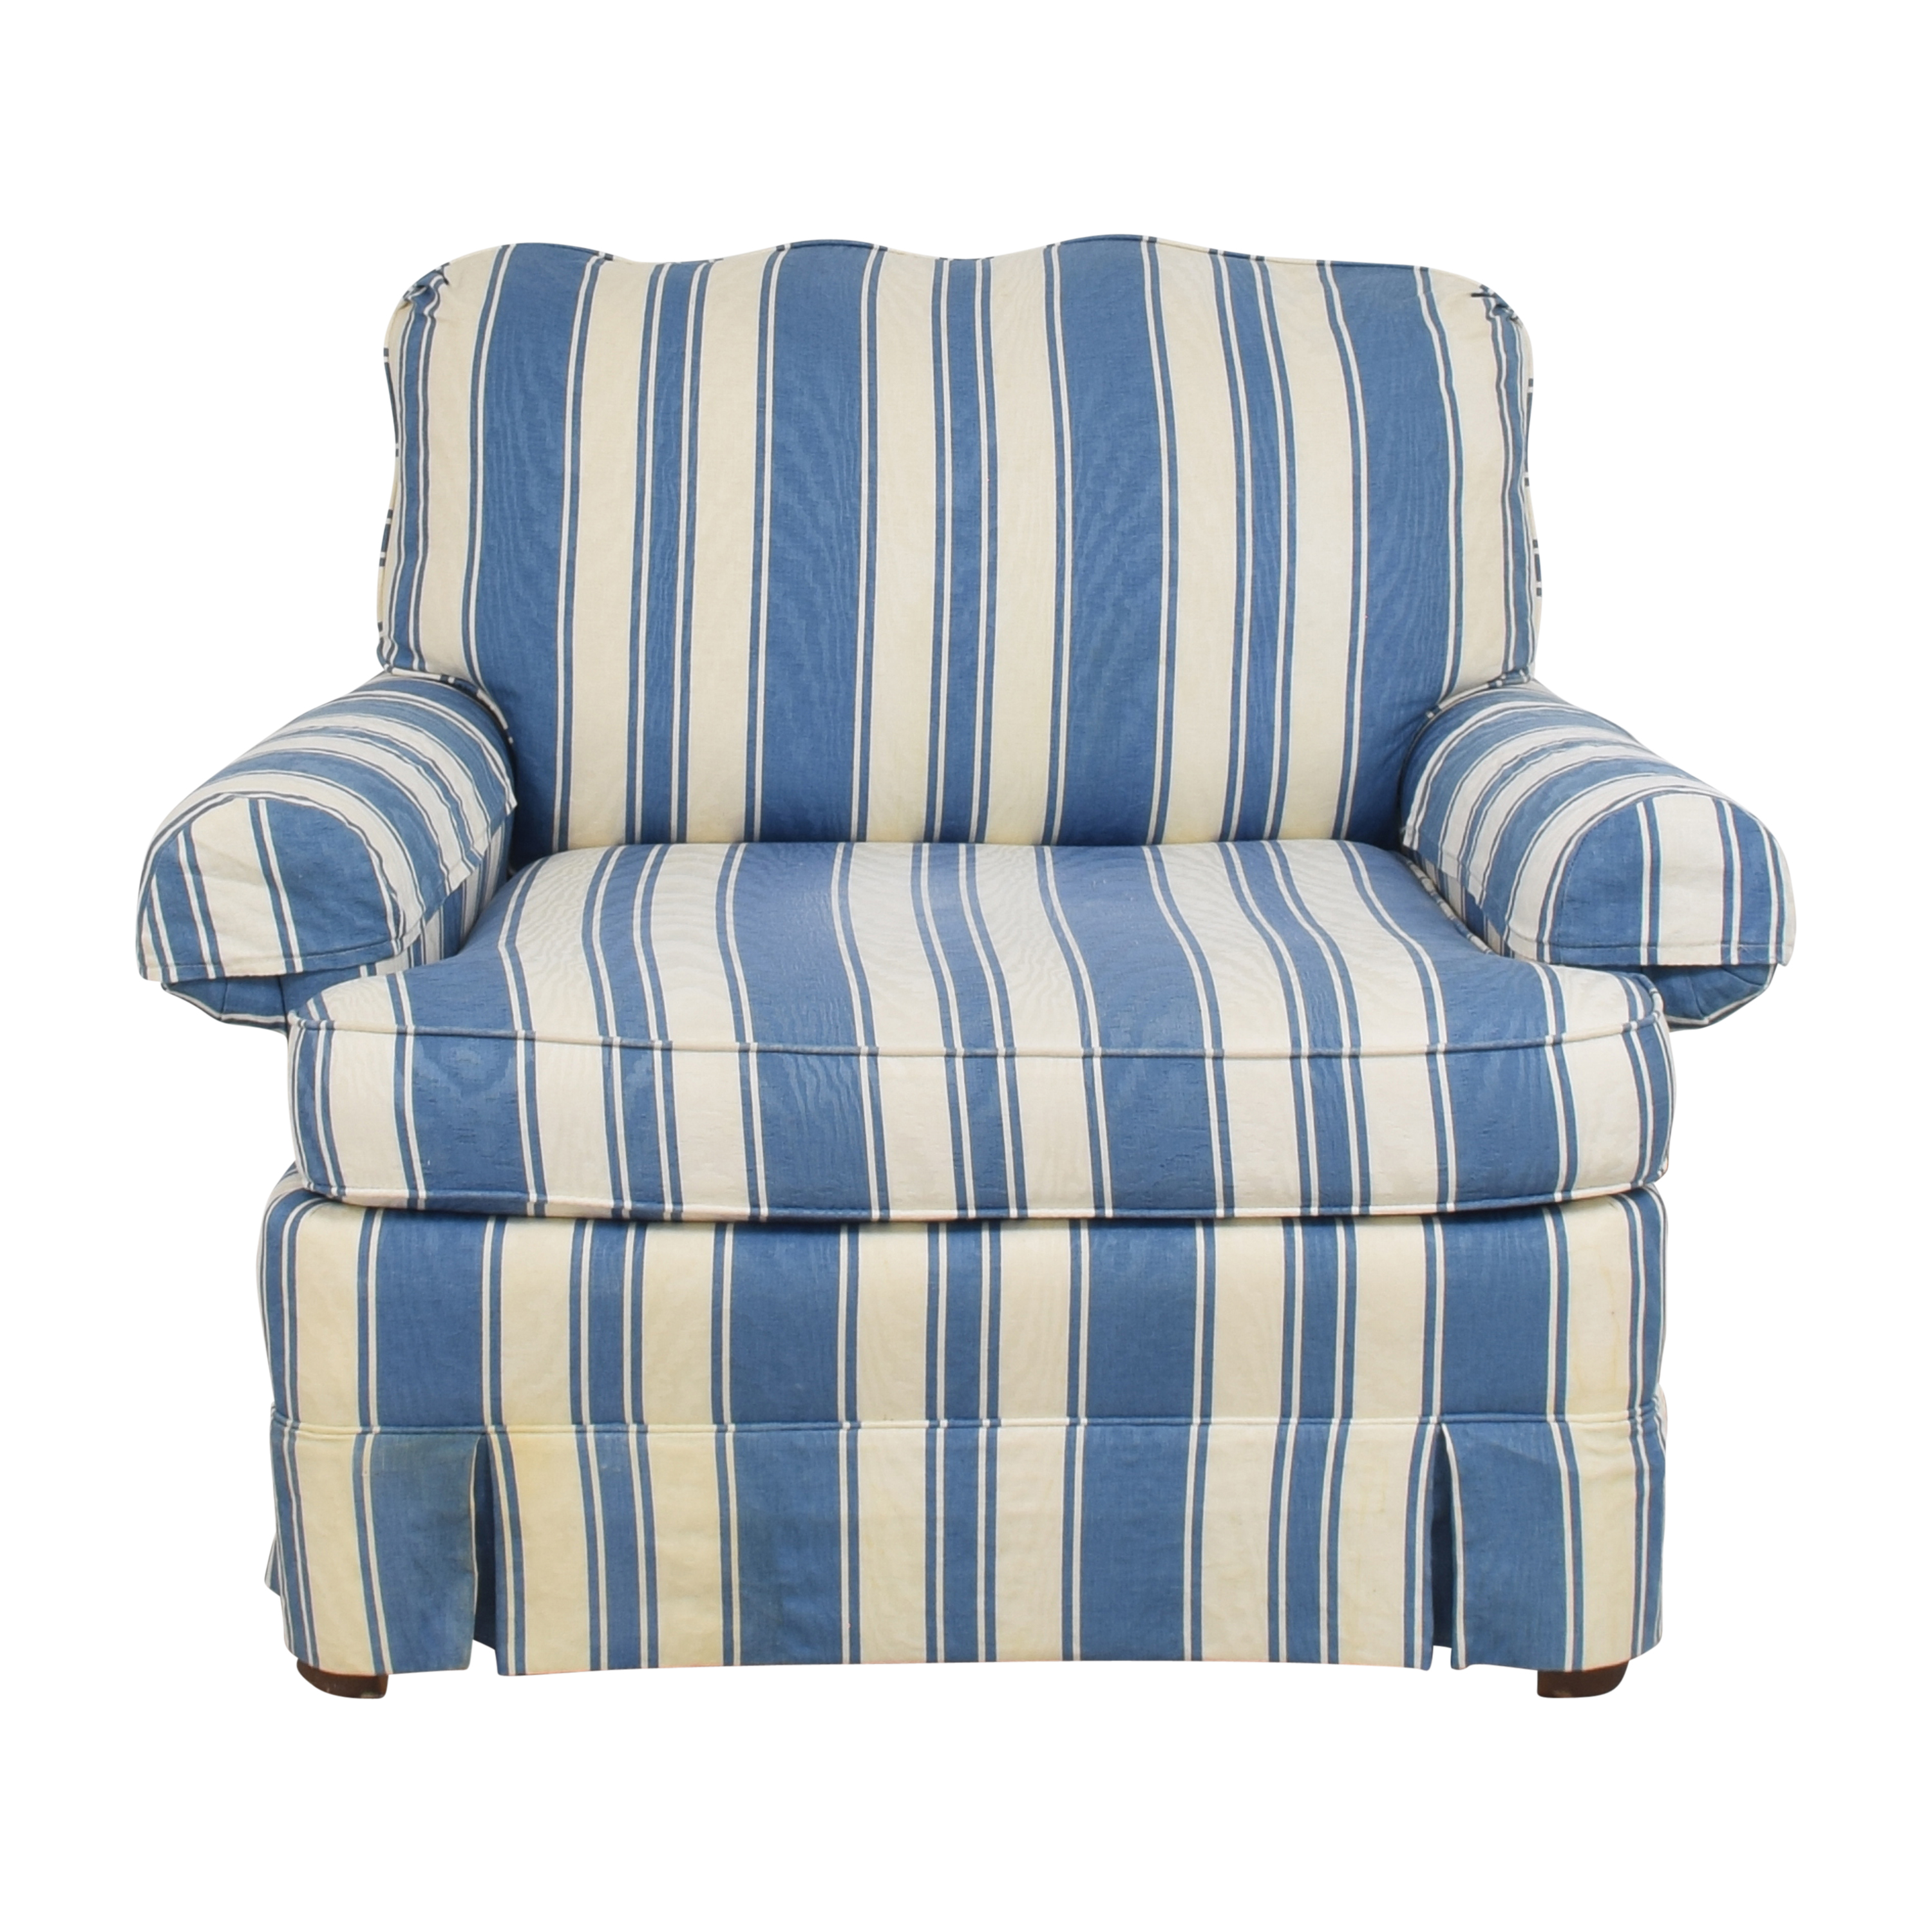 Clayton Marcus Clayton Marcus Striped Accent Chair ct